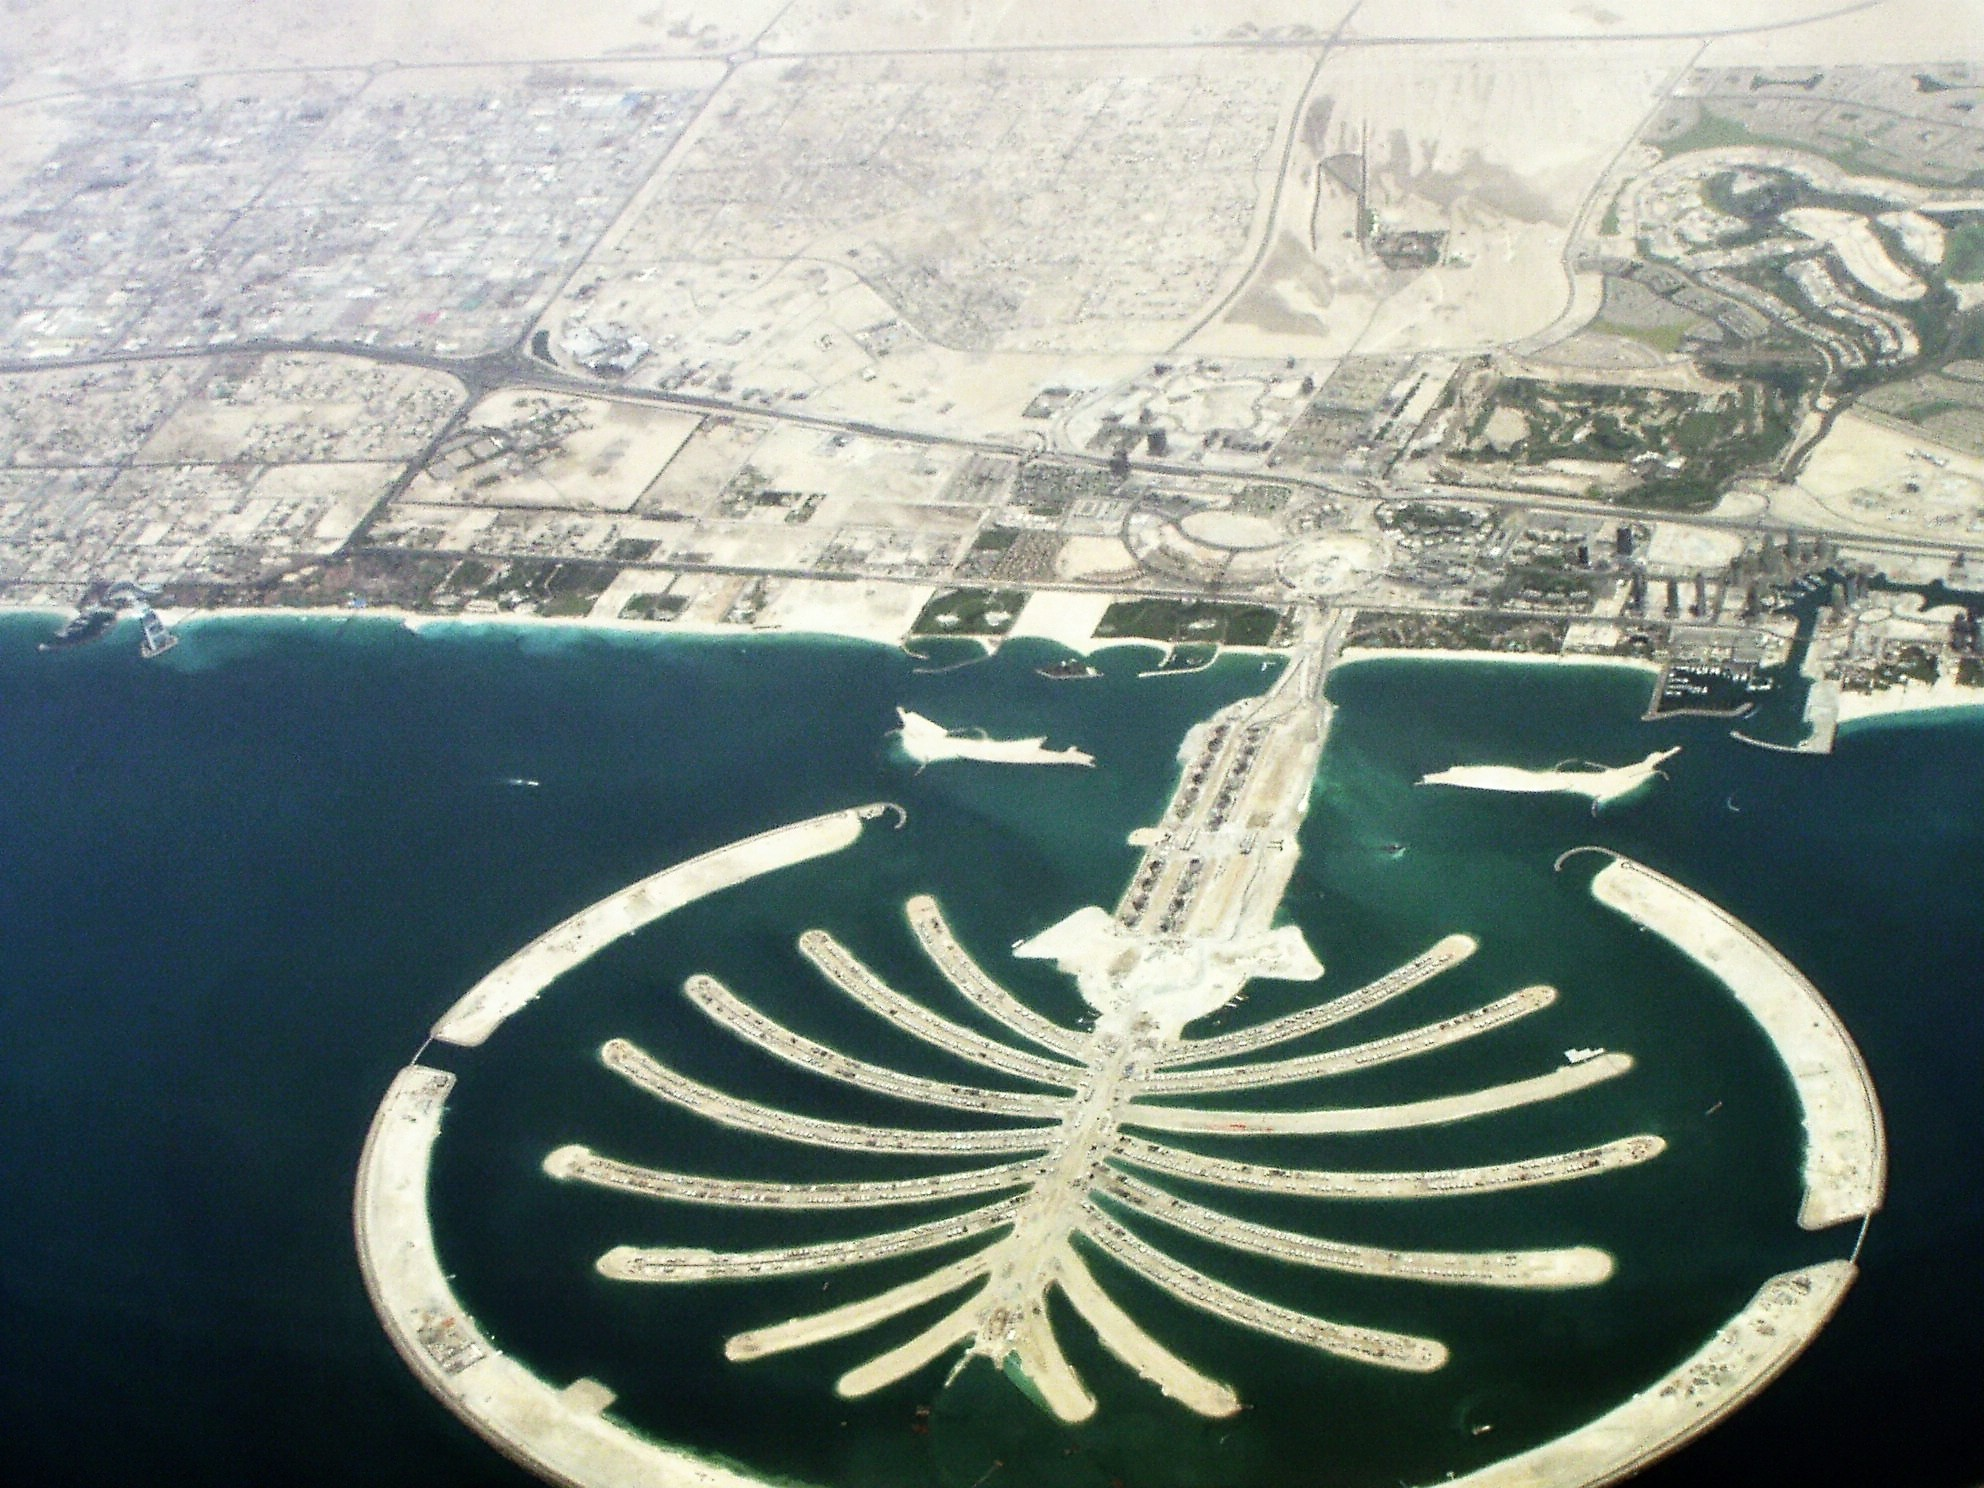 Download this Description Palmislanddubai picture